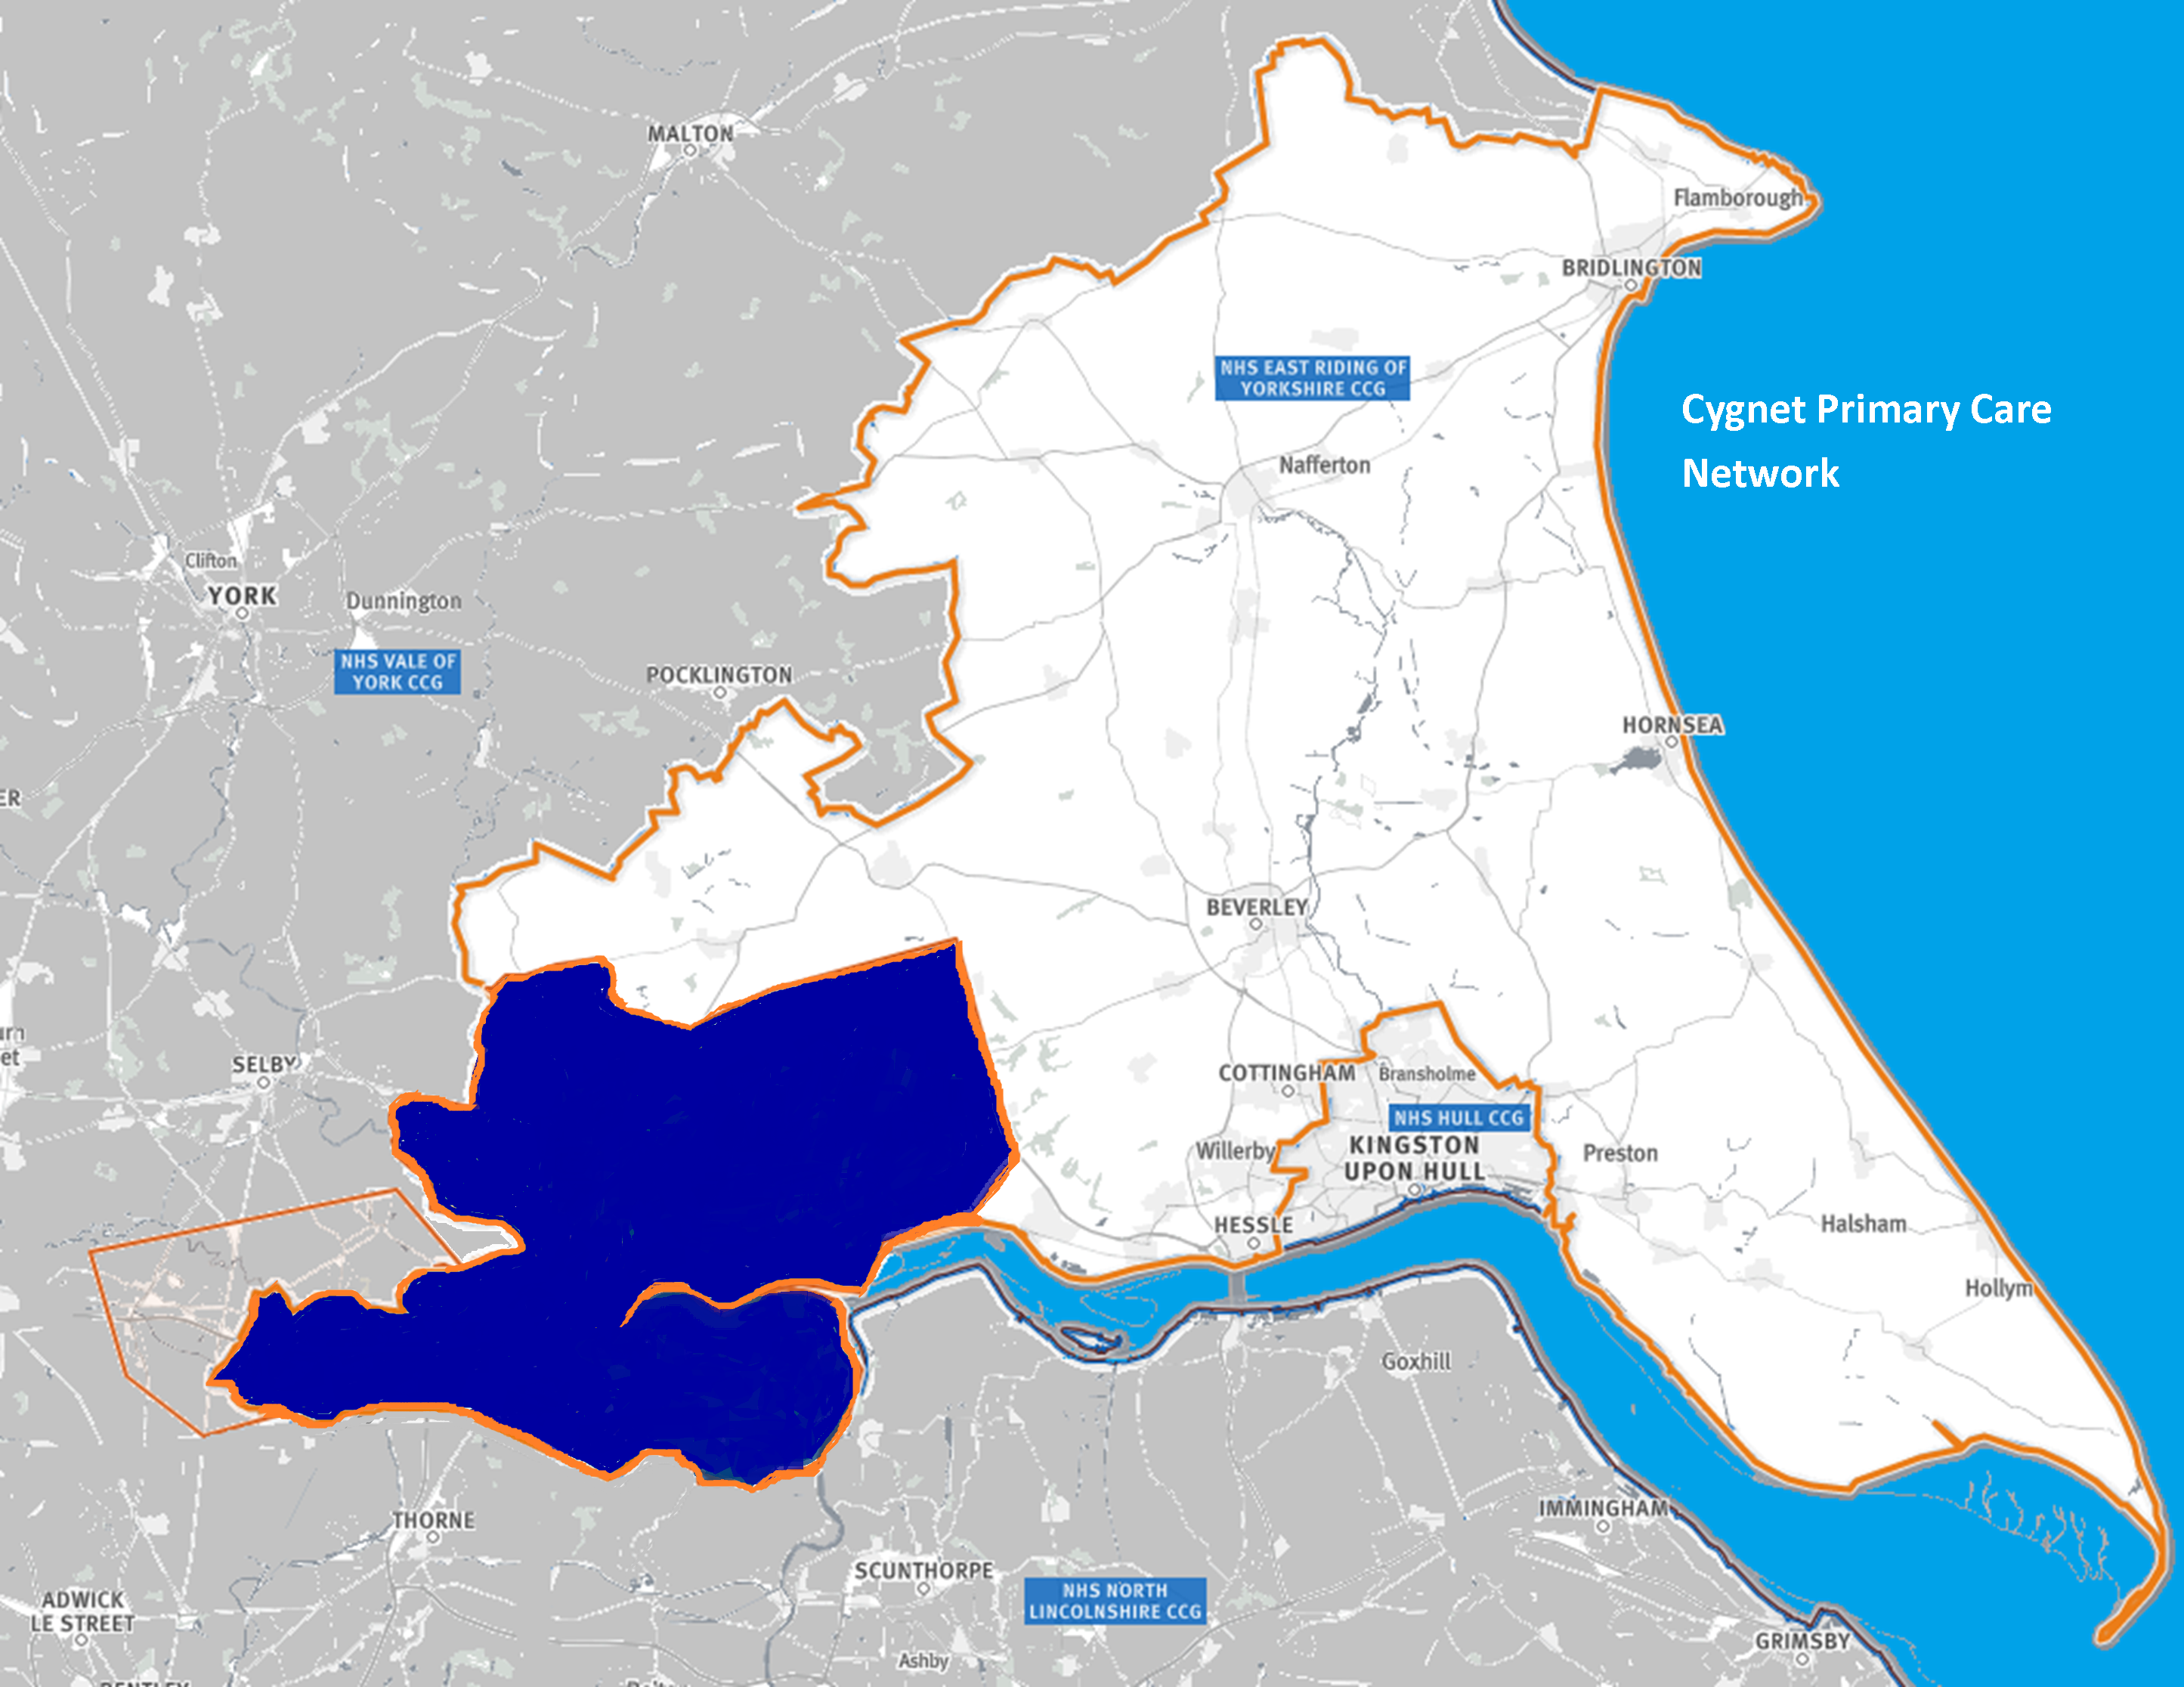 Map of the area covered by the Cygnet PCN